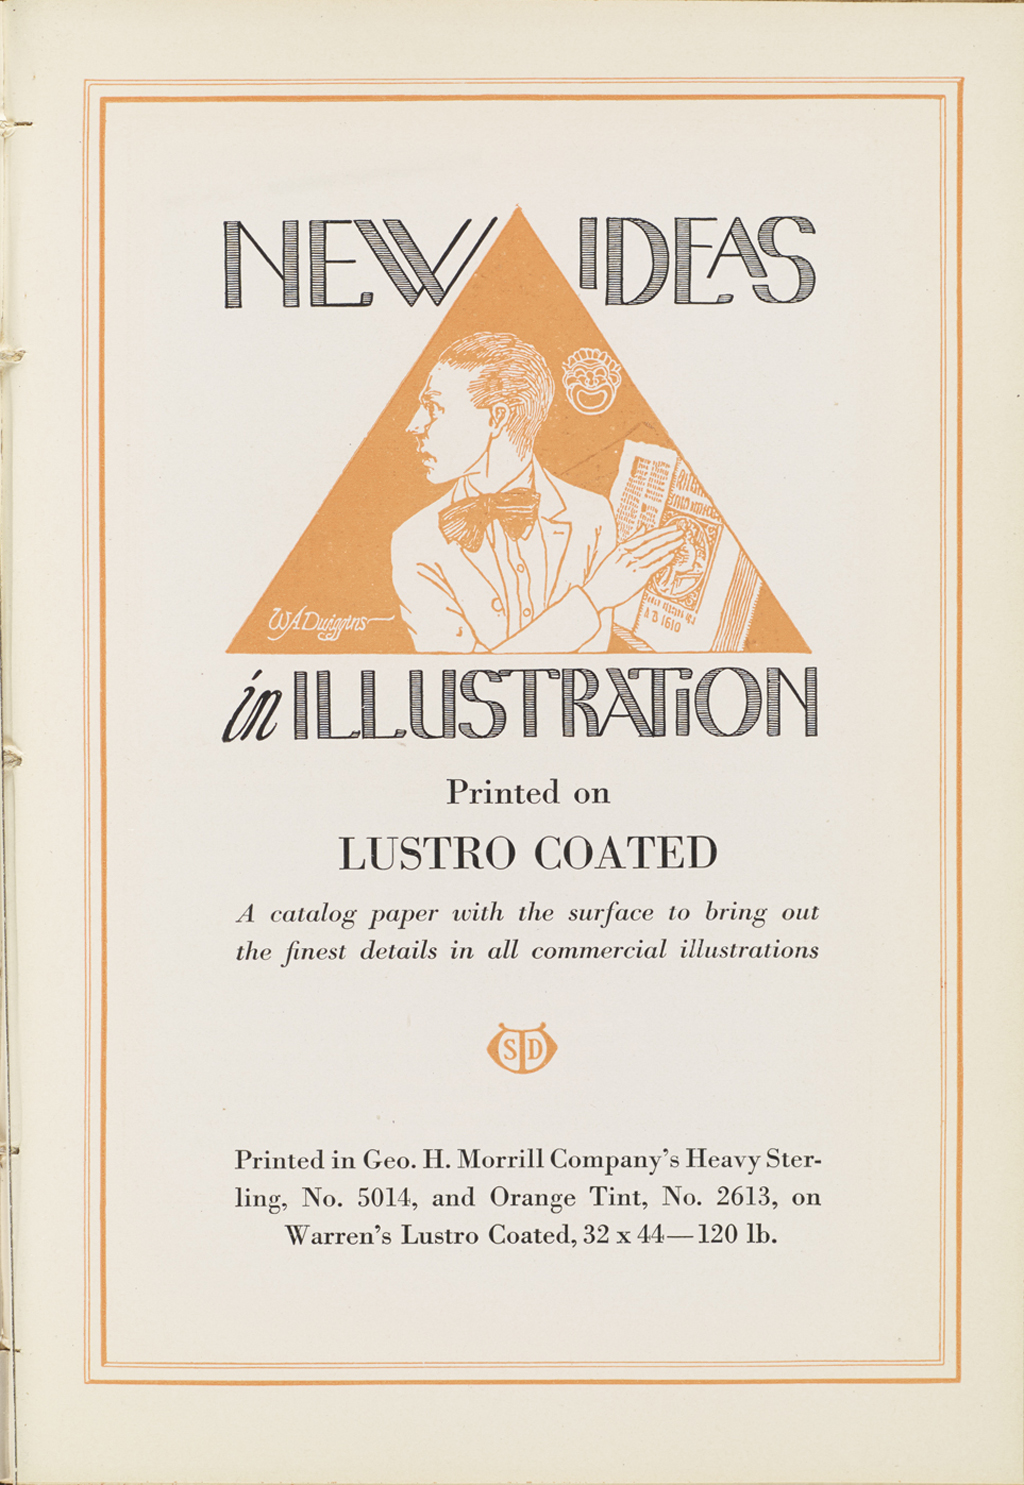 """New Ideas in Illustration"" advertisement by S.D. Warren (1915). Illustration and lettering by W.A. Dwiggins (1914)."